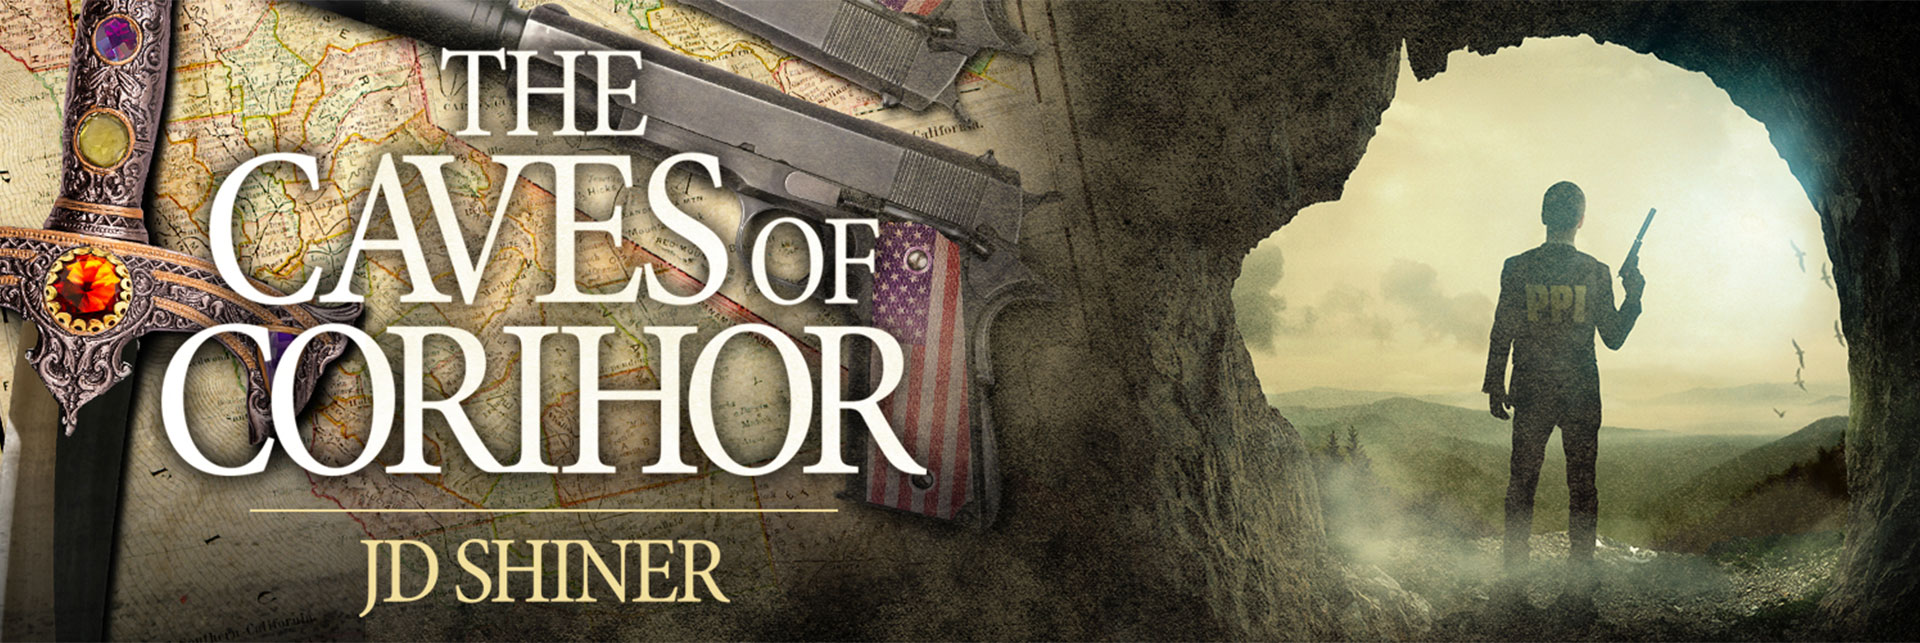 The Caves of Corihor - JD Shiner